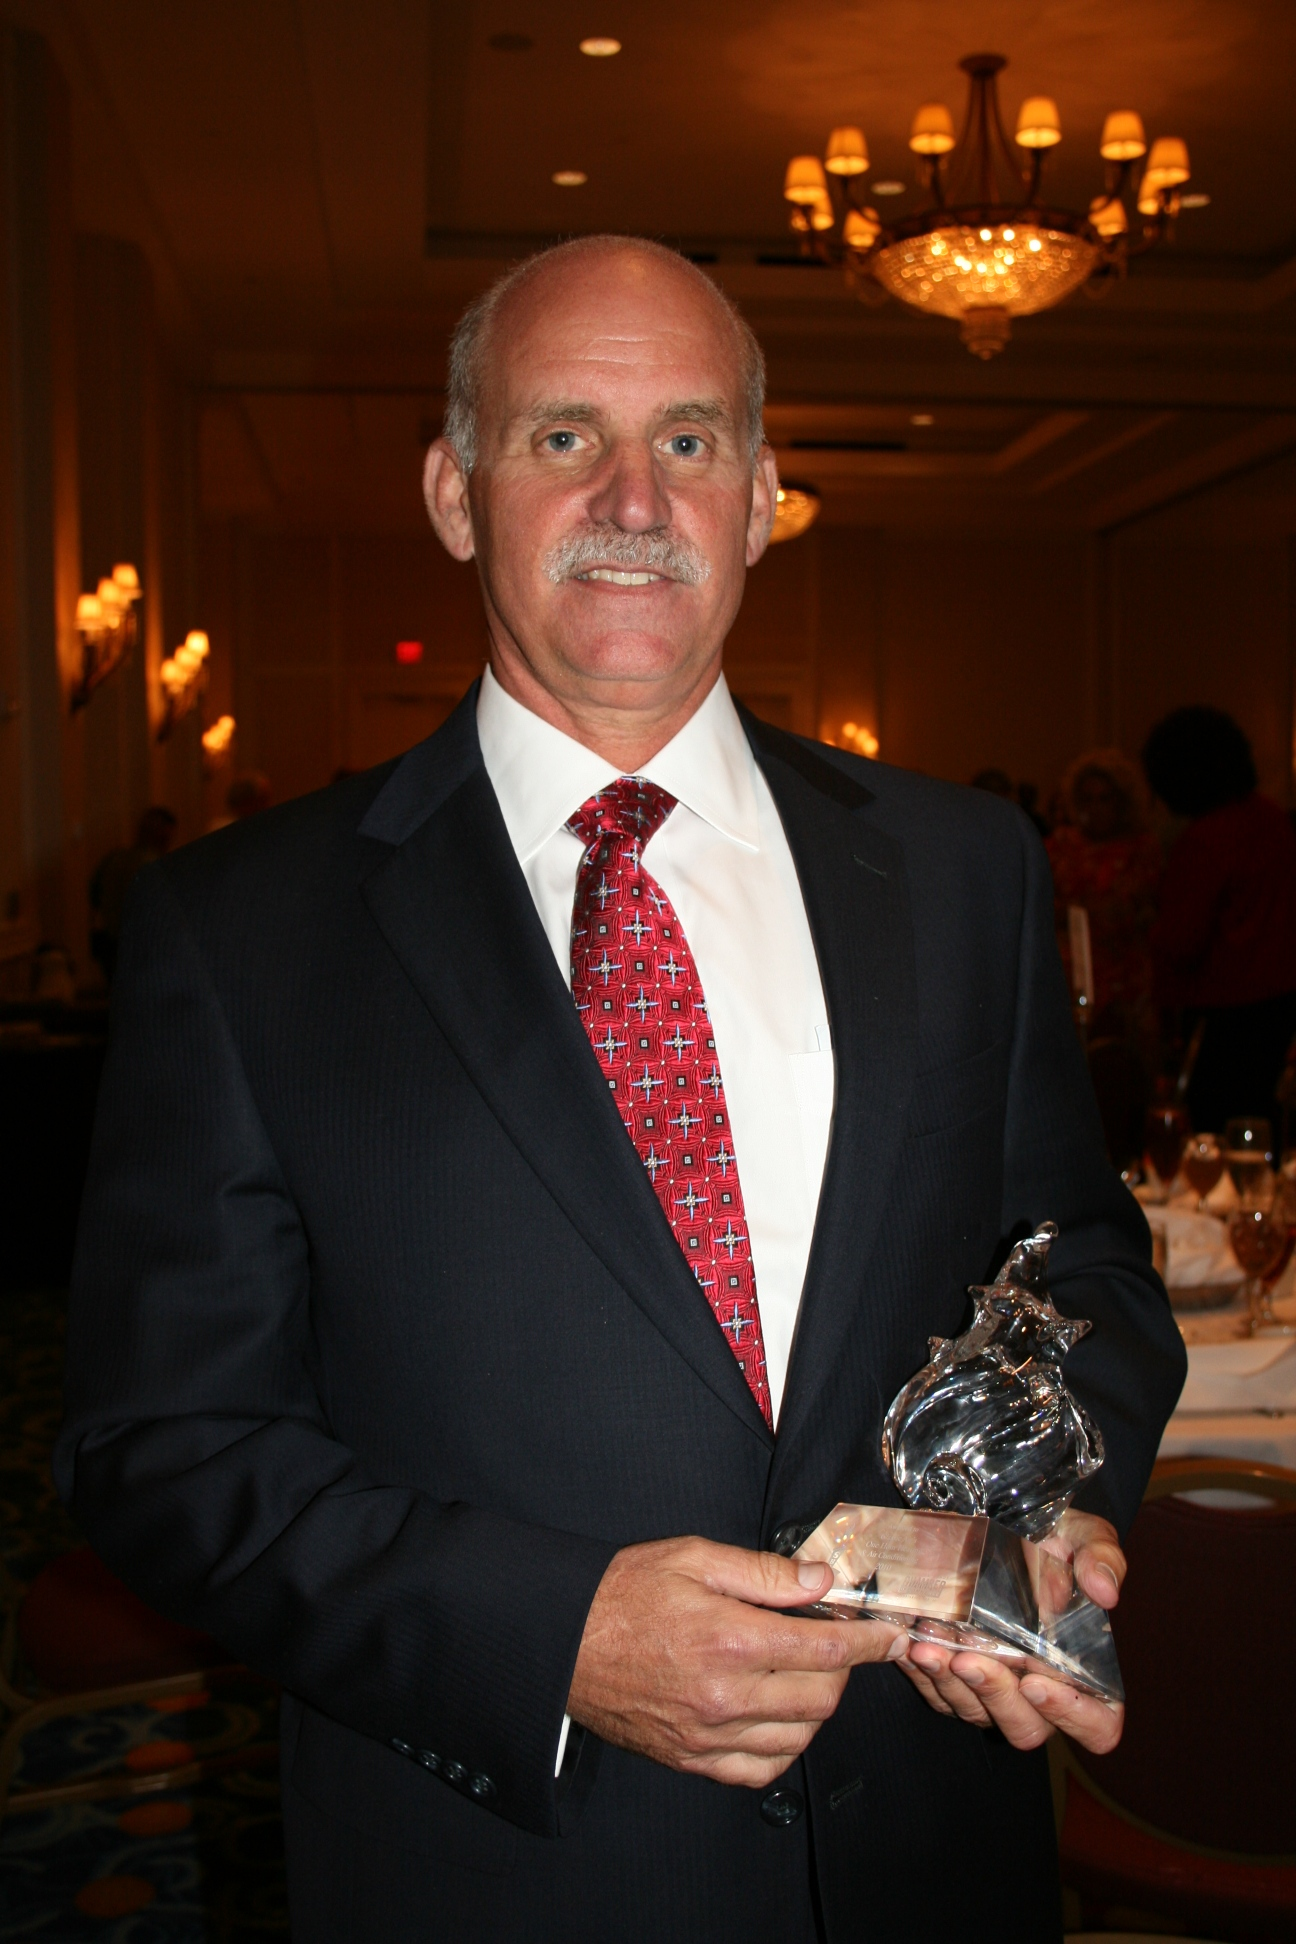 Todd Kletz, owner of Classic Air's One Hour Heating and Air Conditioning in Virginia Beach, was awarded the 2010 Hampton Roads Small Business of the Year Award